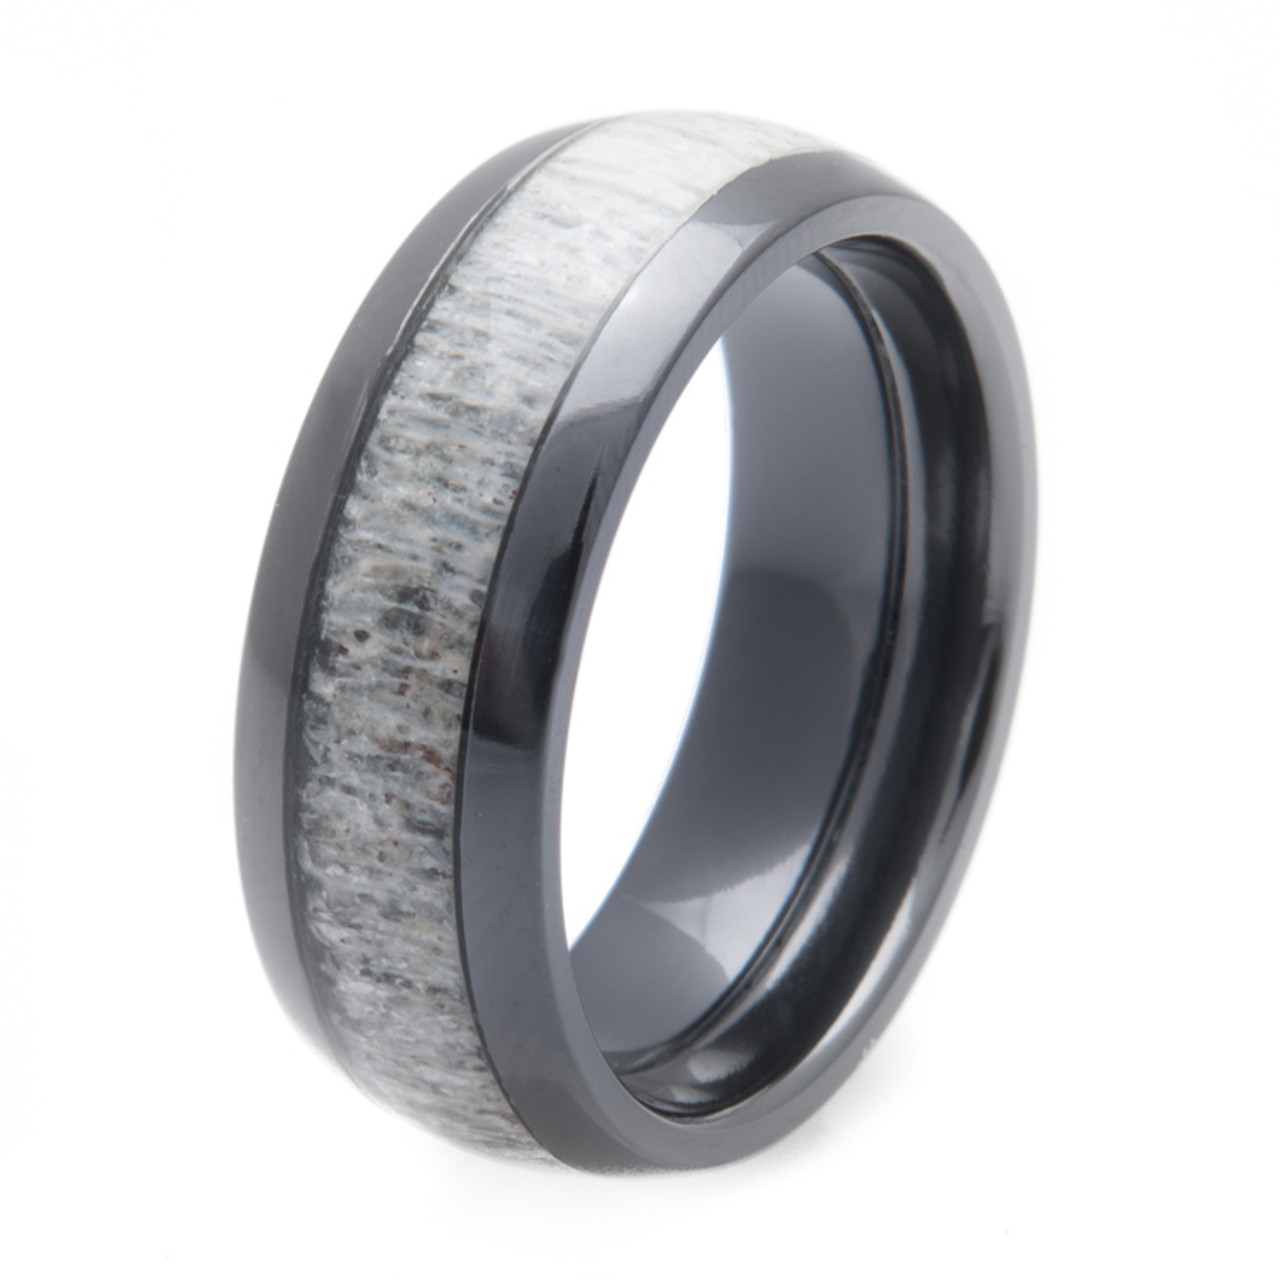 titanium inlaid inlay details with ori deer tags antler rings wedding ring hunting alternative